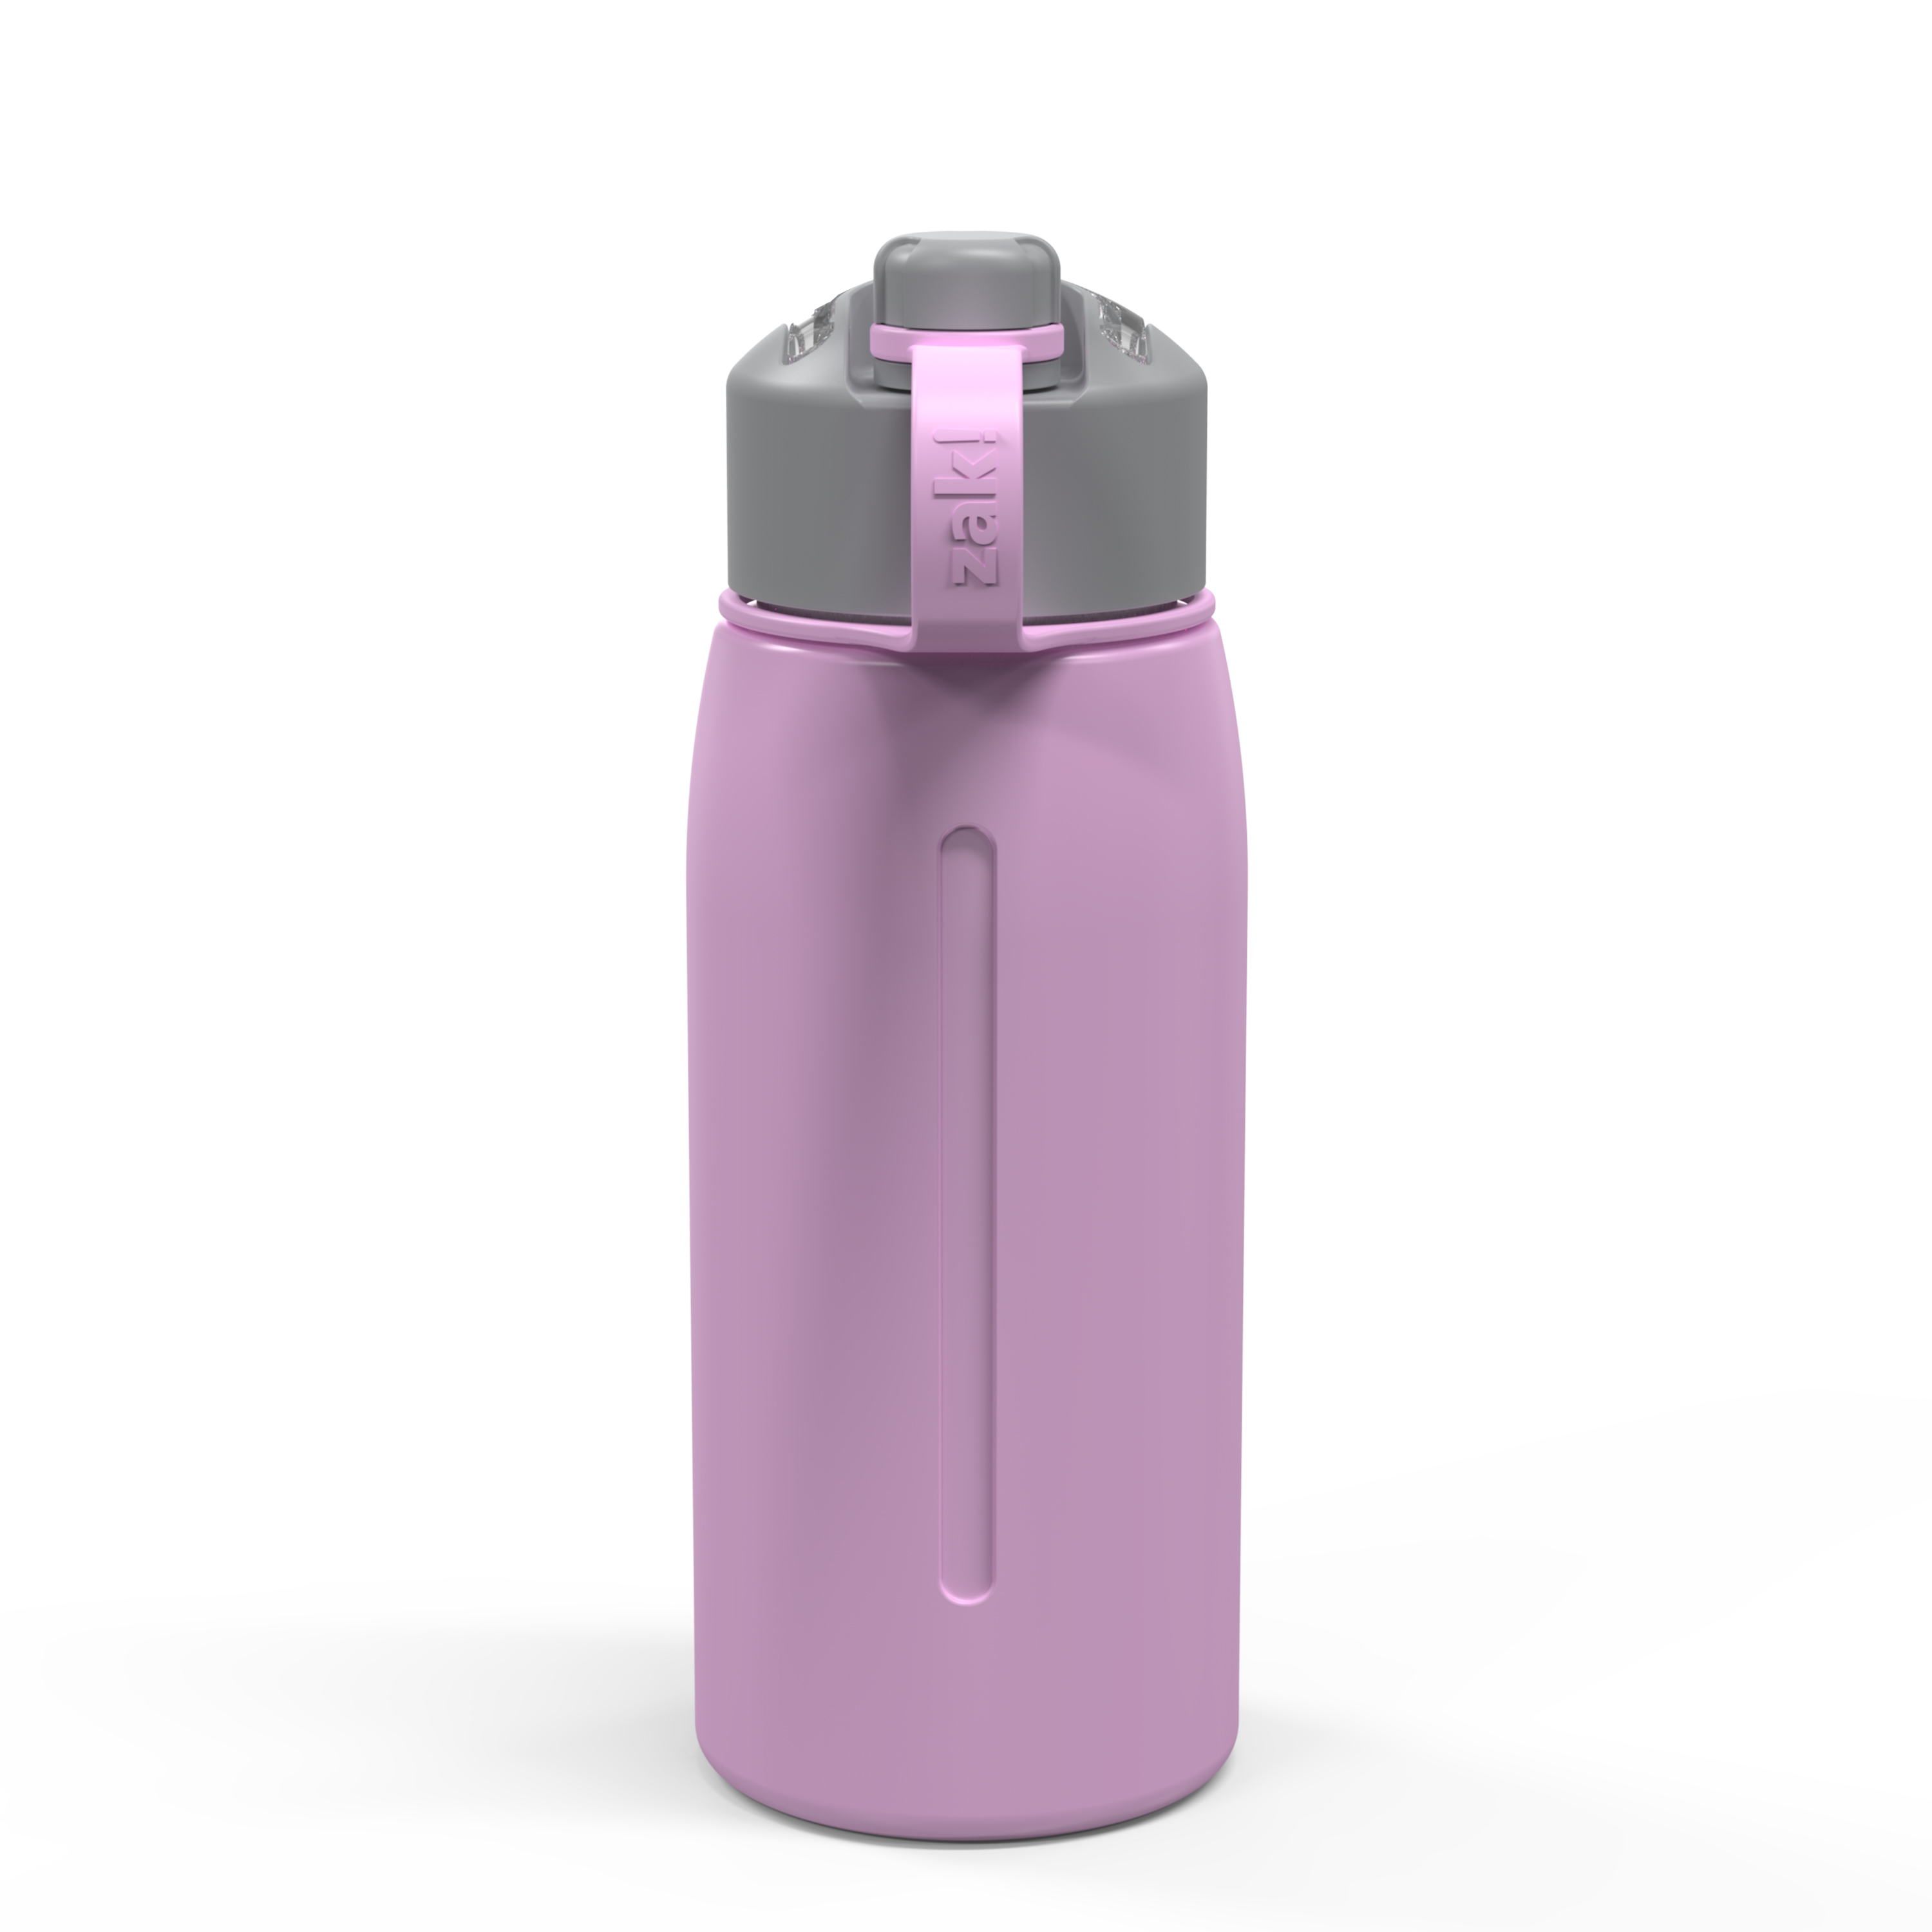 Genesis 24 ounce Vacuum Insulated Stainless Steel Tumbler, Lilac slideshow image 8